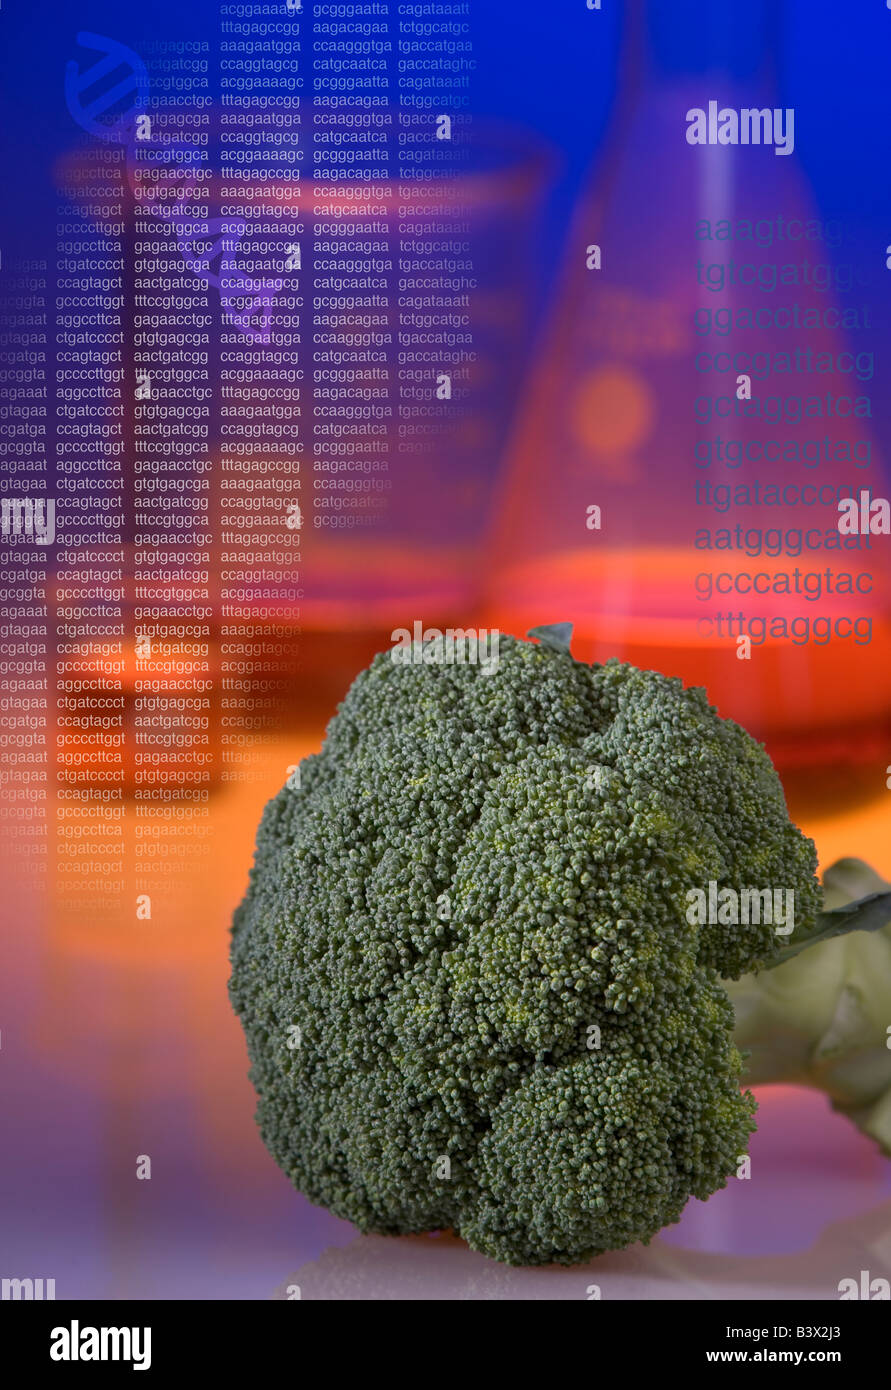 Concept shot of genetically modified broccoli showing beakers and DNA sequence codes and a helix. - Stock Image